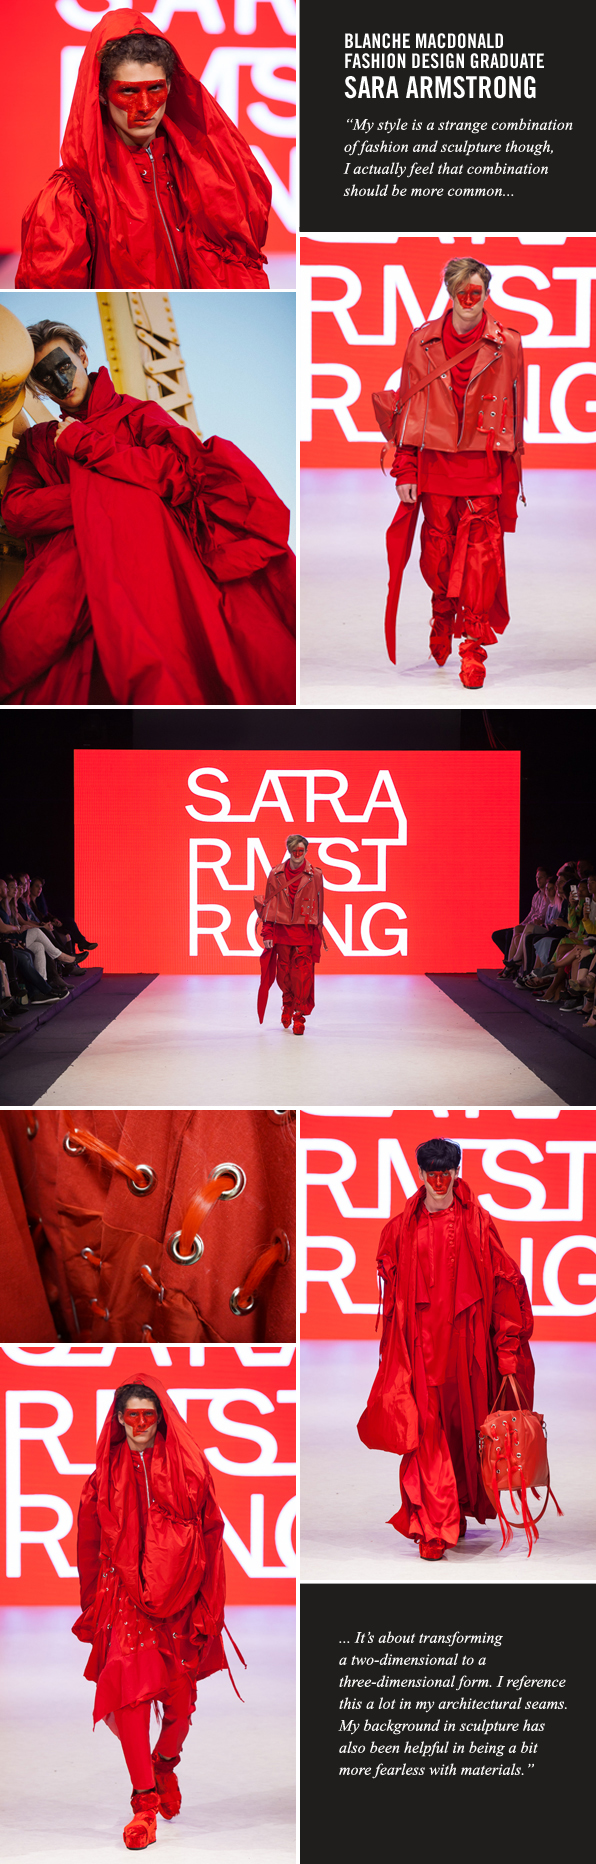 Blanche Macdonald Fashion Design graduate-turned-instructor Sara Armstrong at Vancouver Fashion Week SS17